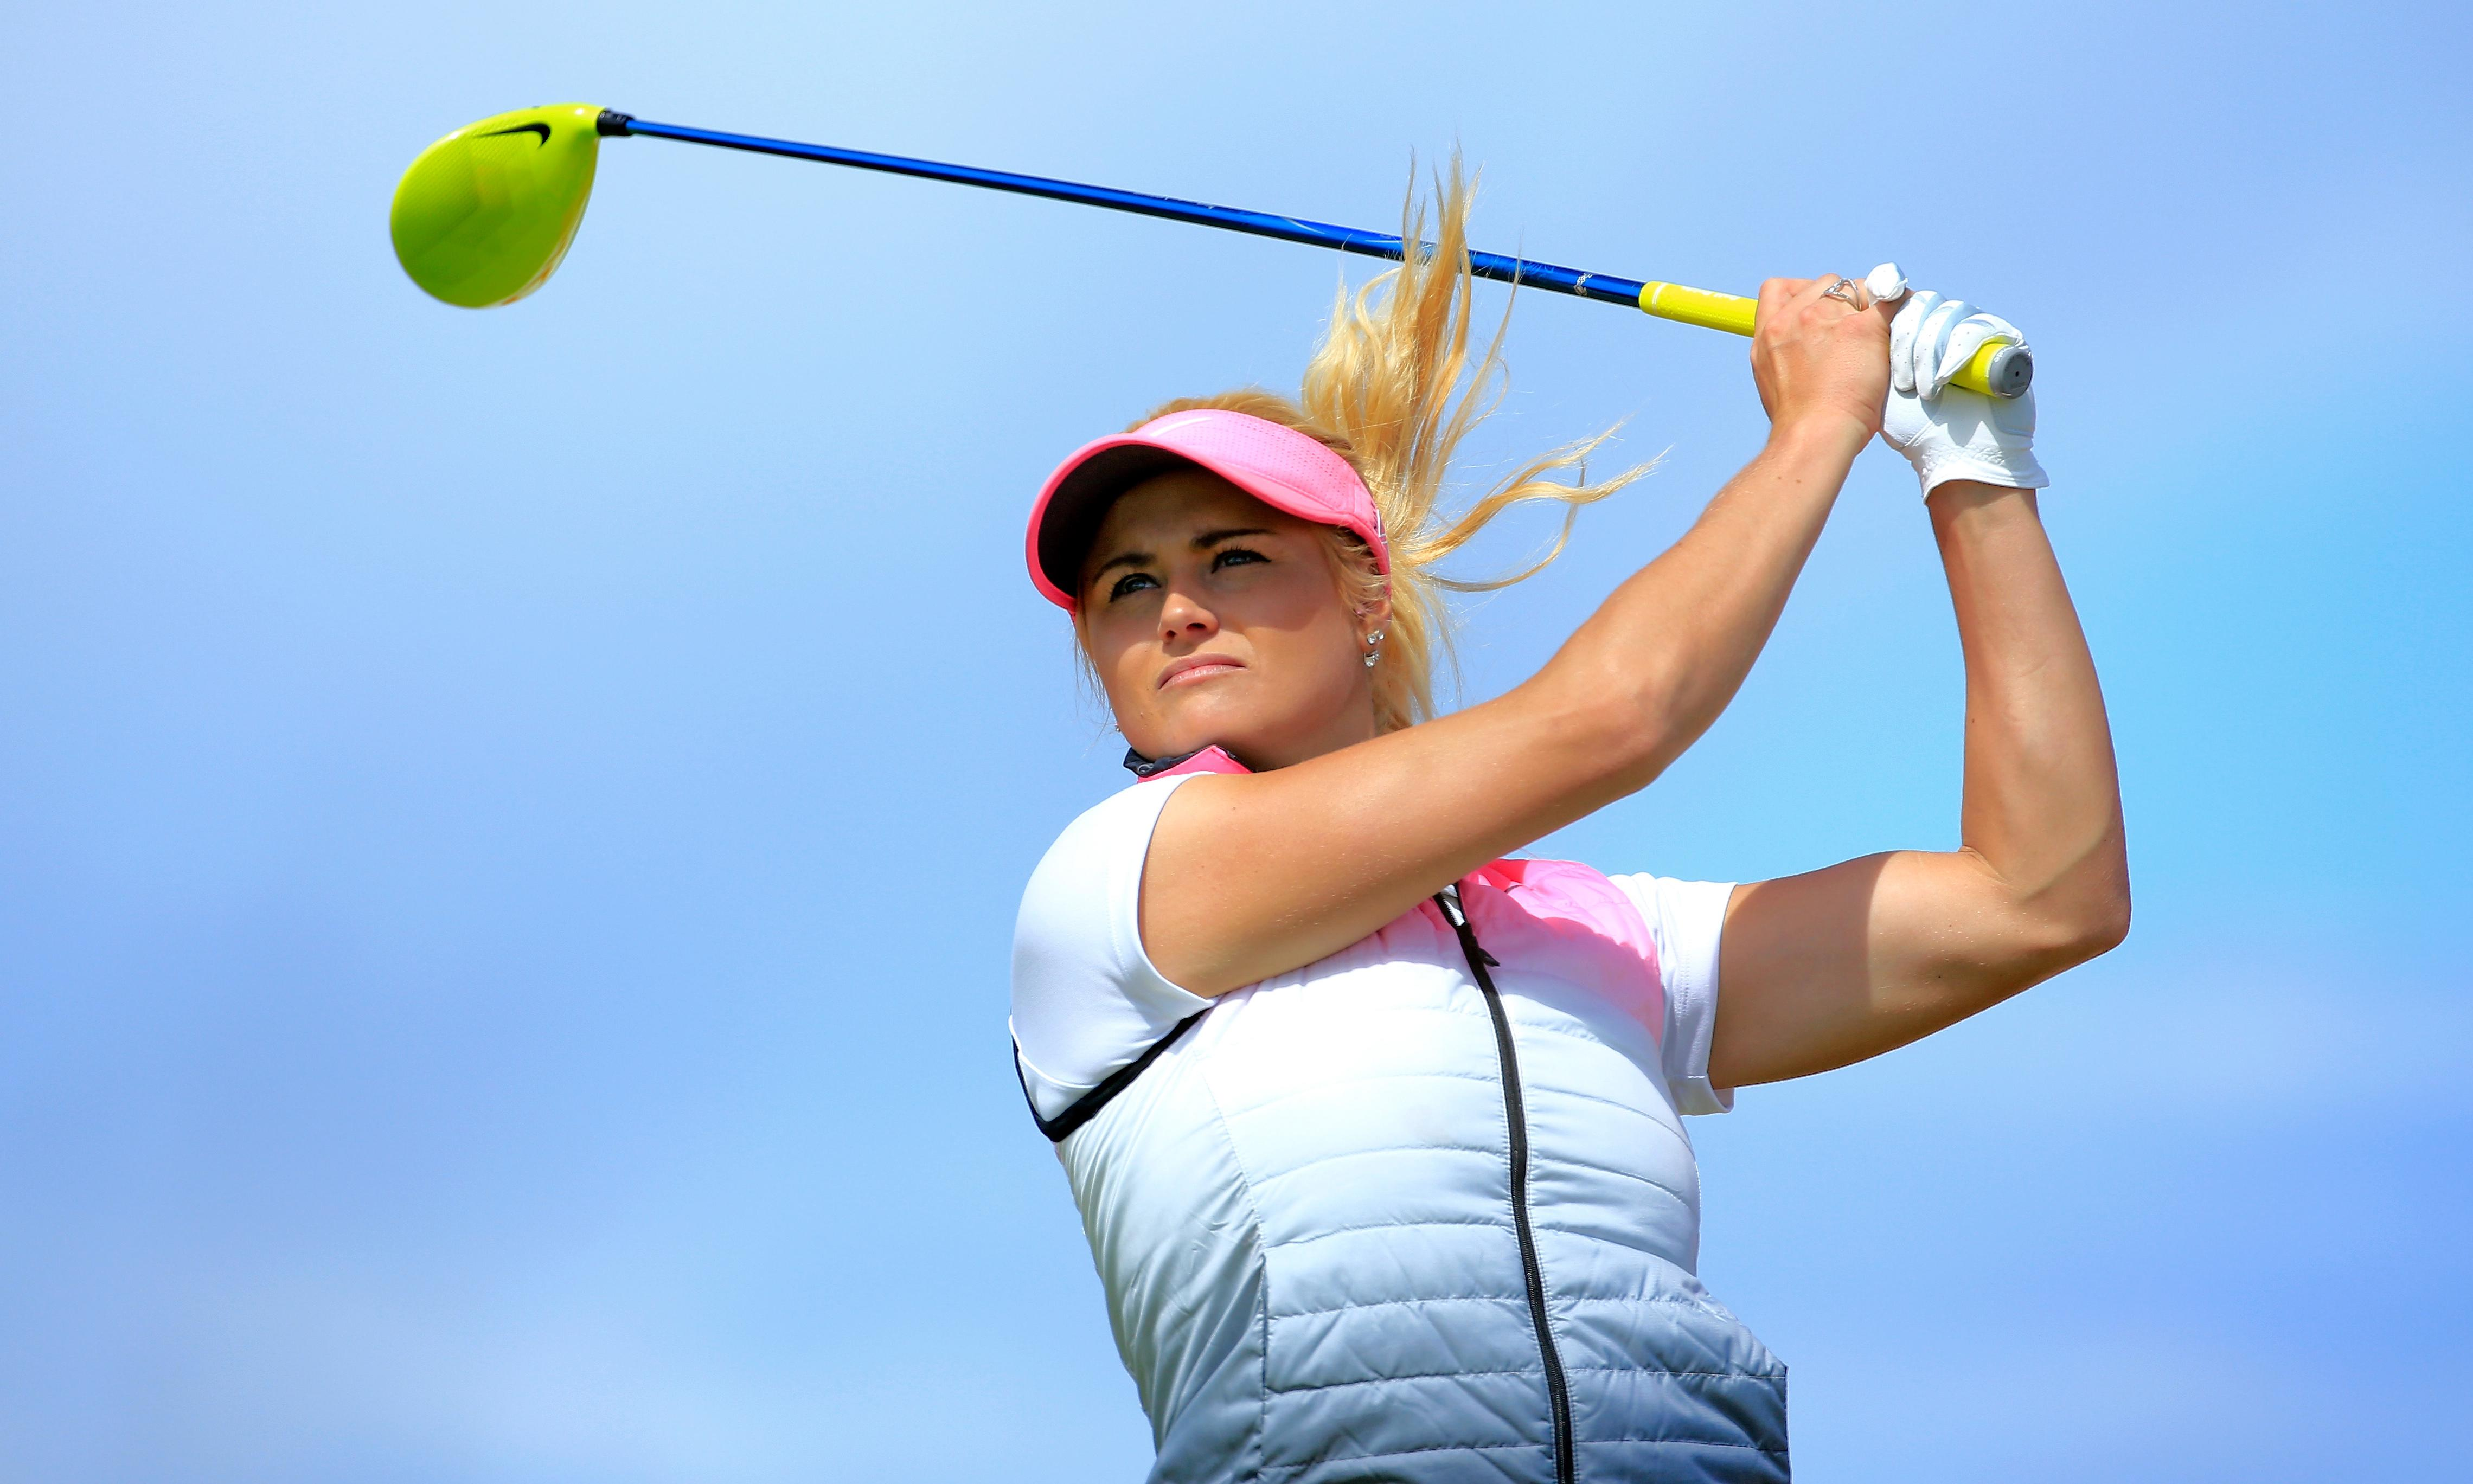 Carly Booth faces criticism over sponsorship deal with Golf Saudi